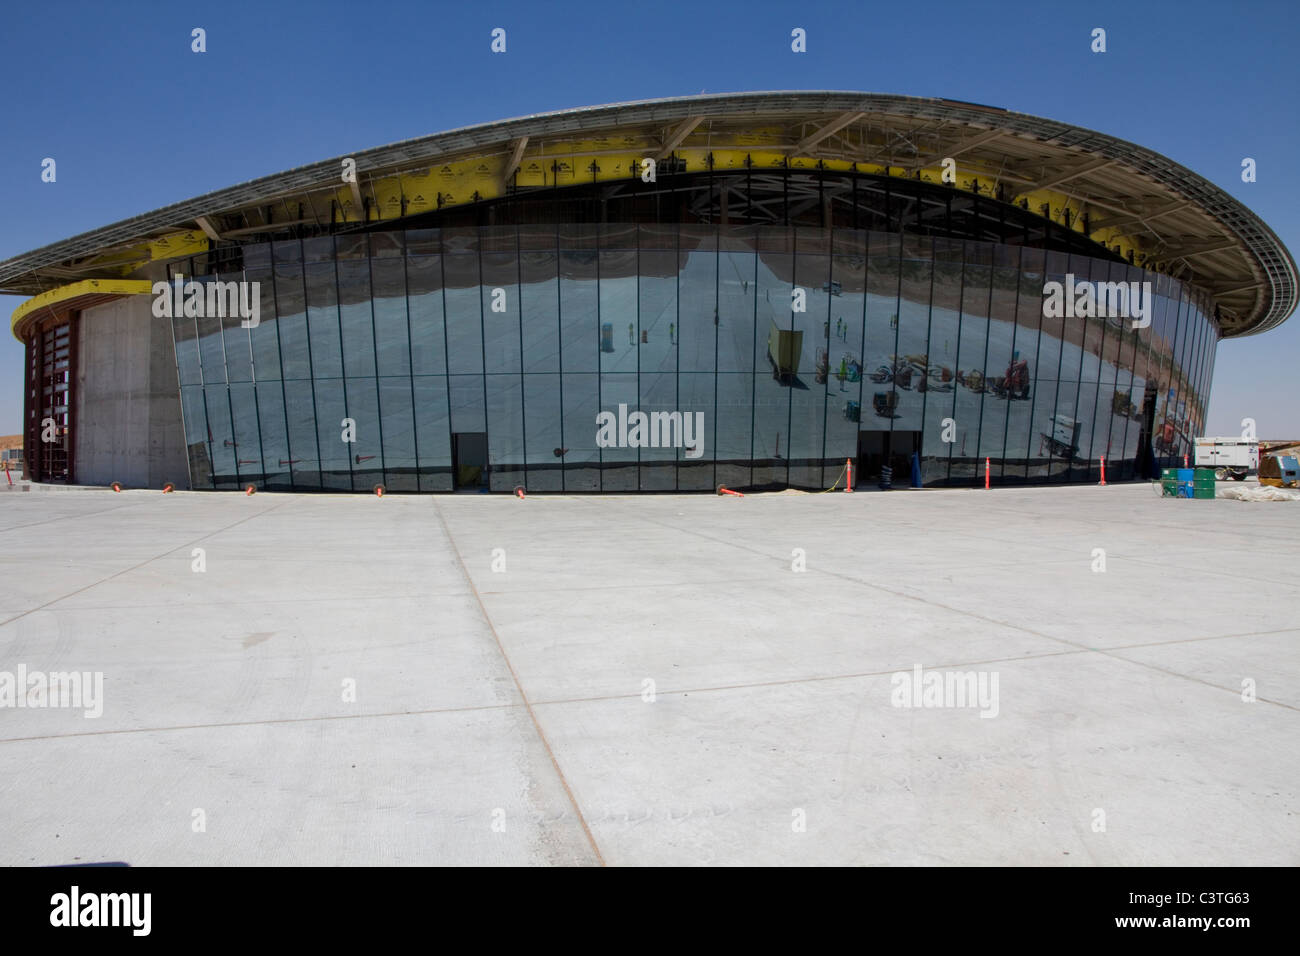 Virgin Galactic, Terminal Hangar Facility, Spaceport America, near Truth or Consequences, NM - Stock Image